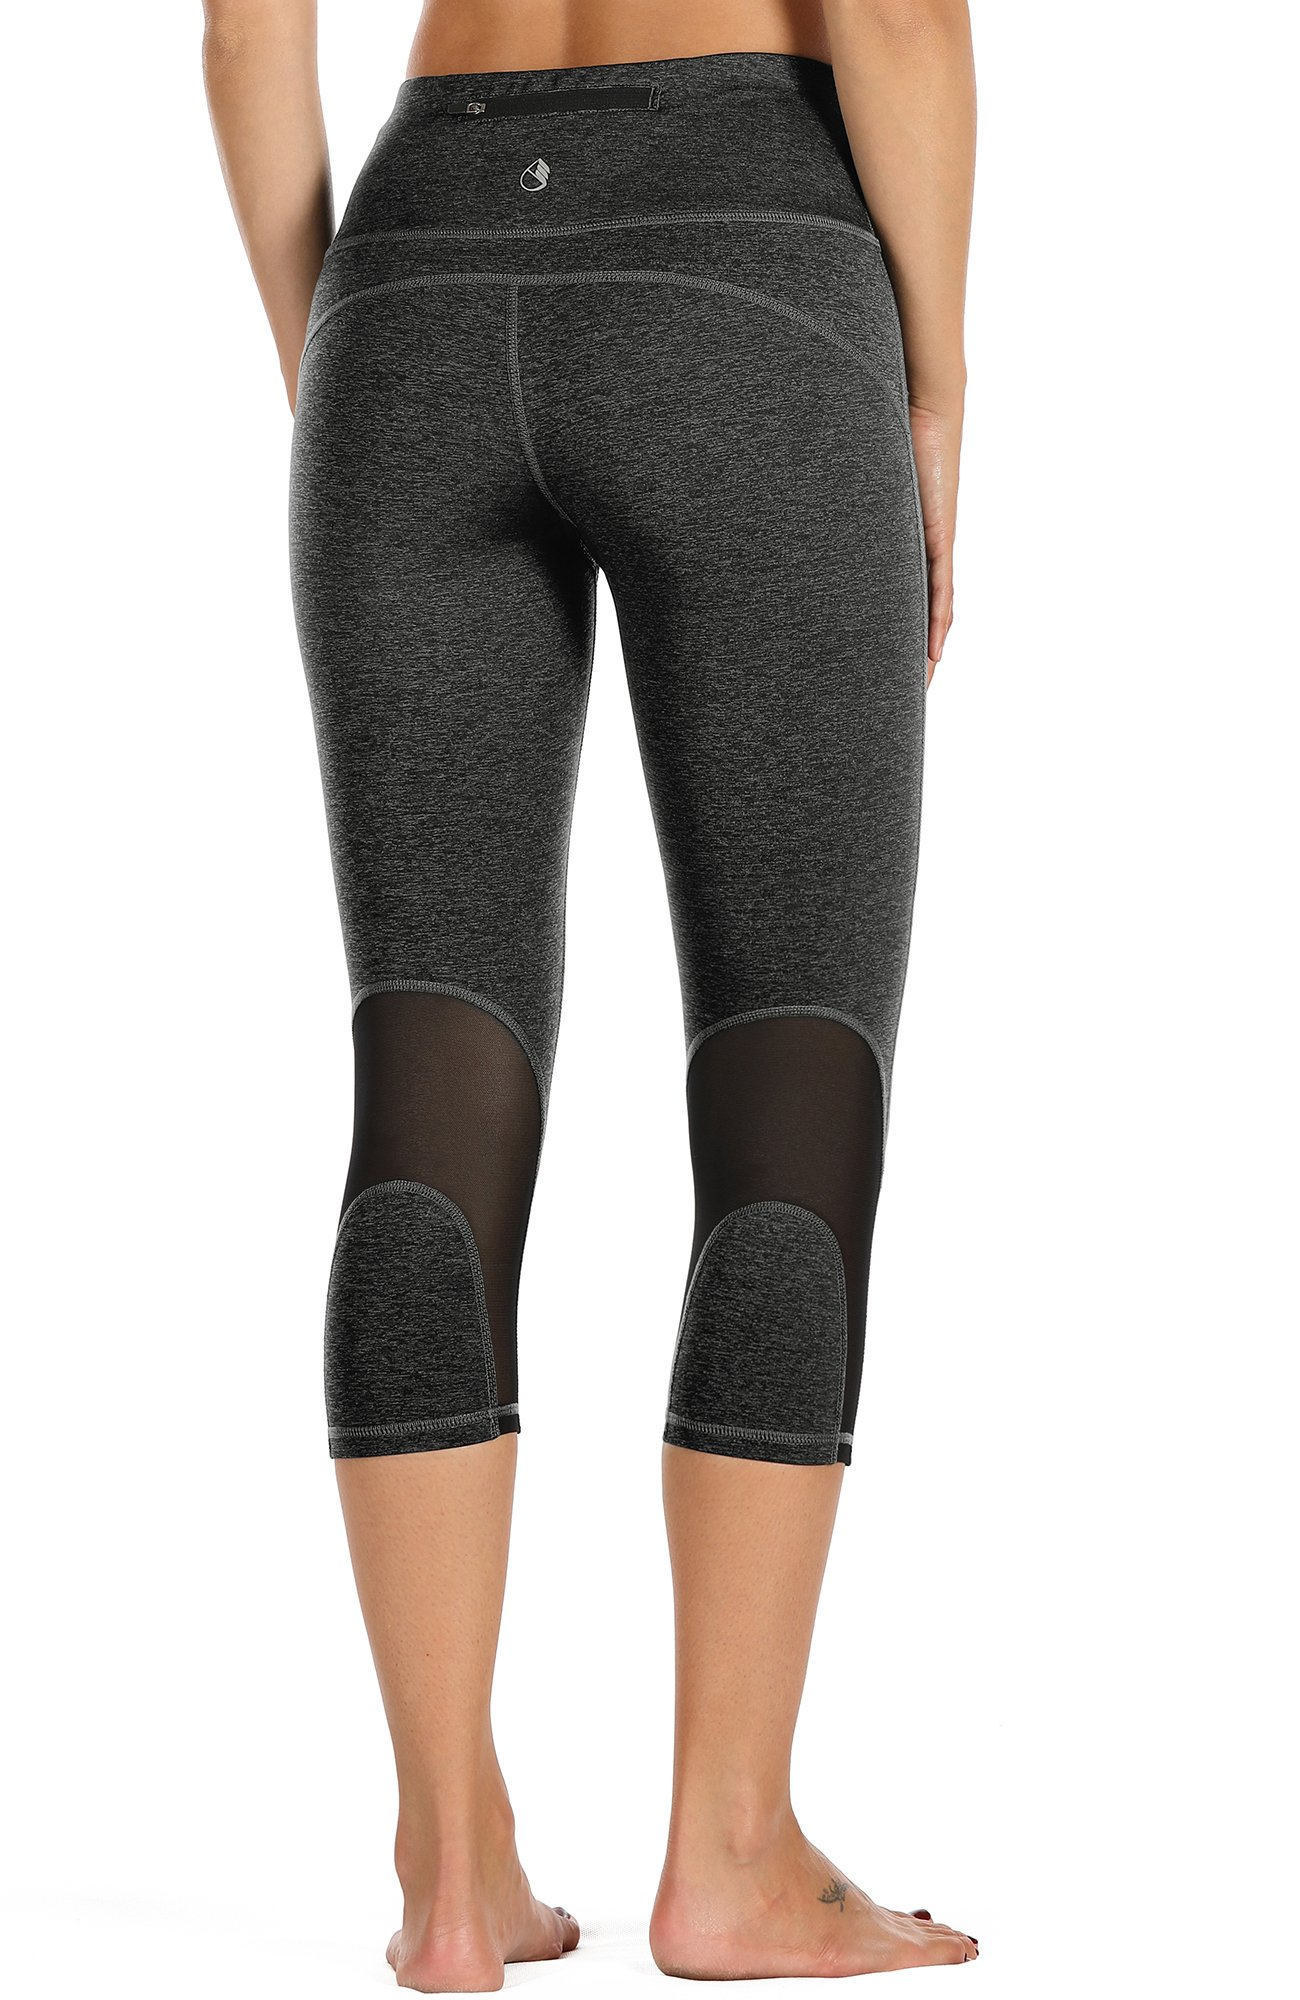 icyzone Yoga Pants for Women - High Waisted Workout Leggings, Activewear Athletic Capris Exercise Tights(Charcoal, M) by icyzone